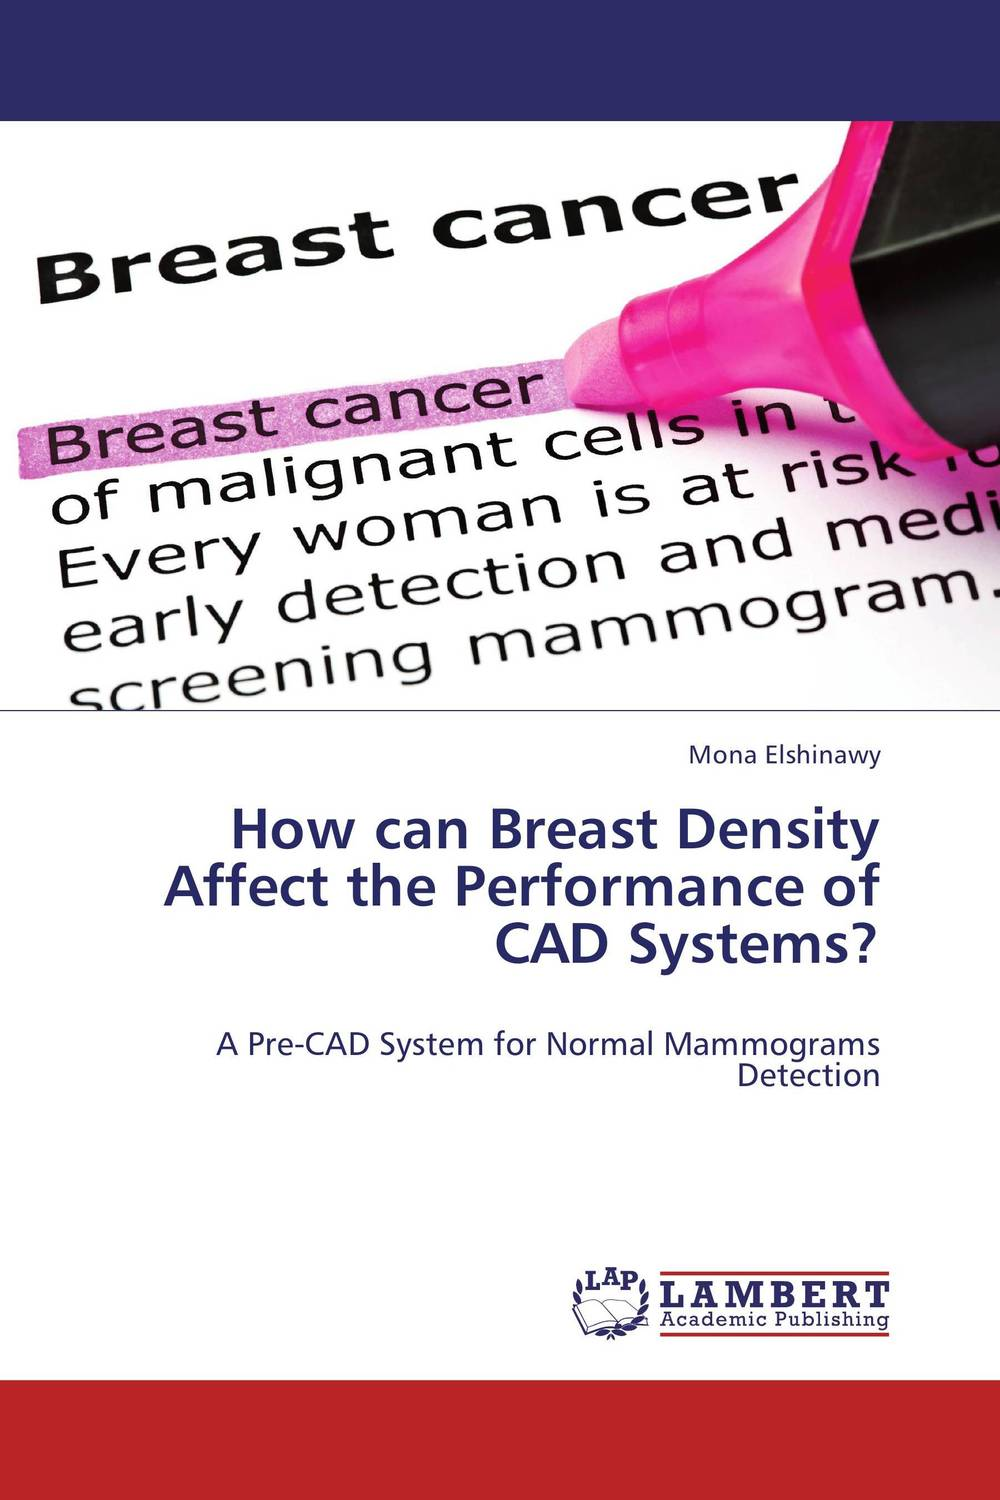 How can Breast Density Affect the Performance of CAD Systems? detection of breast cancer microcalcifications in mammograms